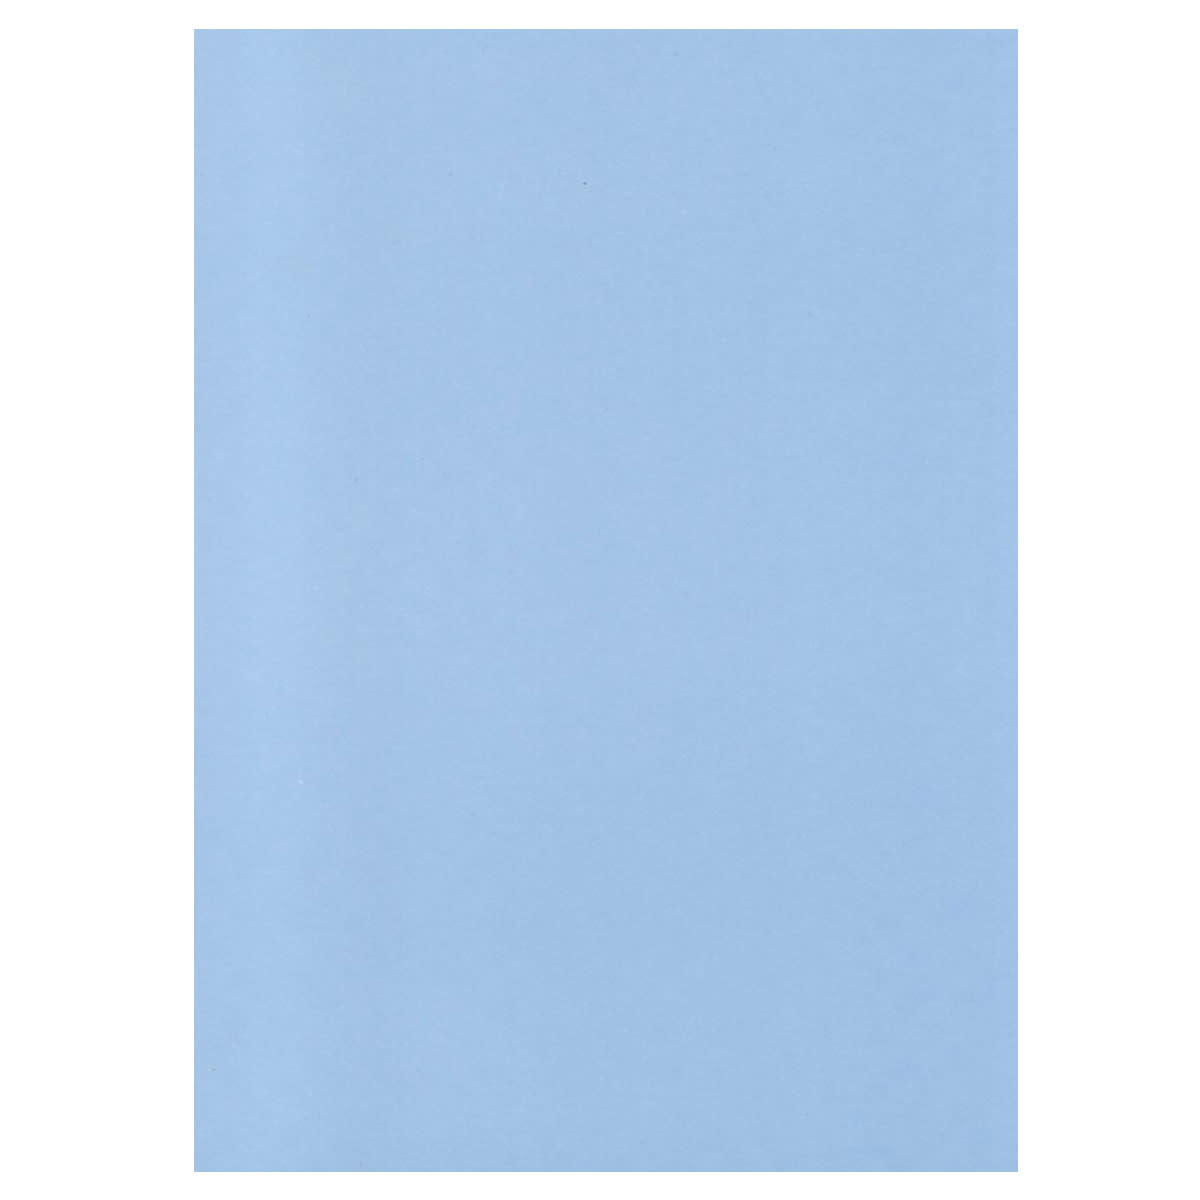 A4 BABY BLUE SINGLE SIDED WASH CARD 300 GSM